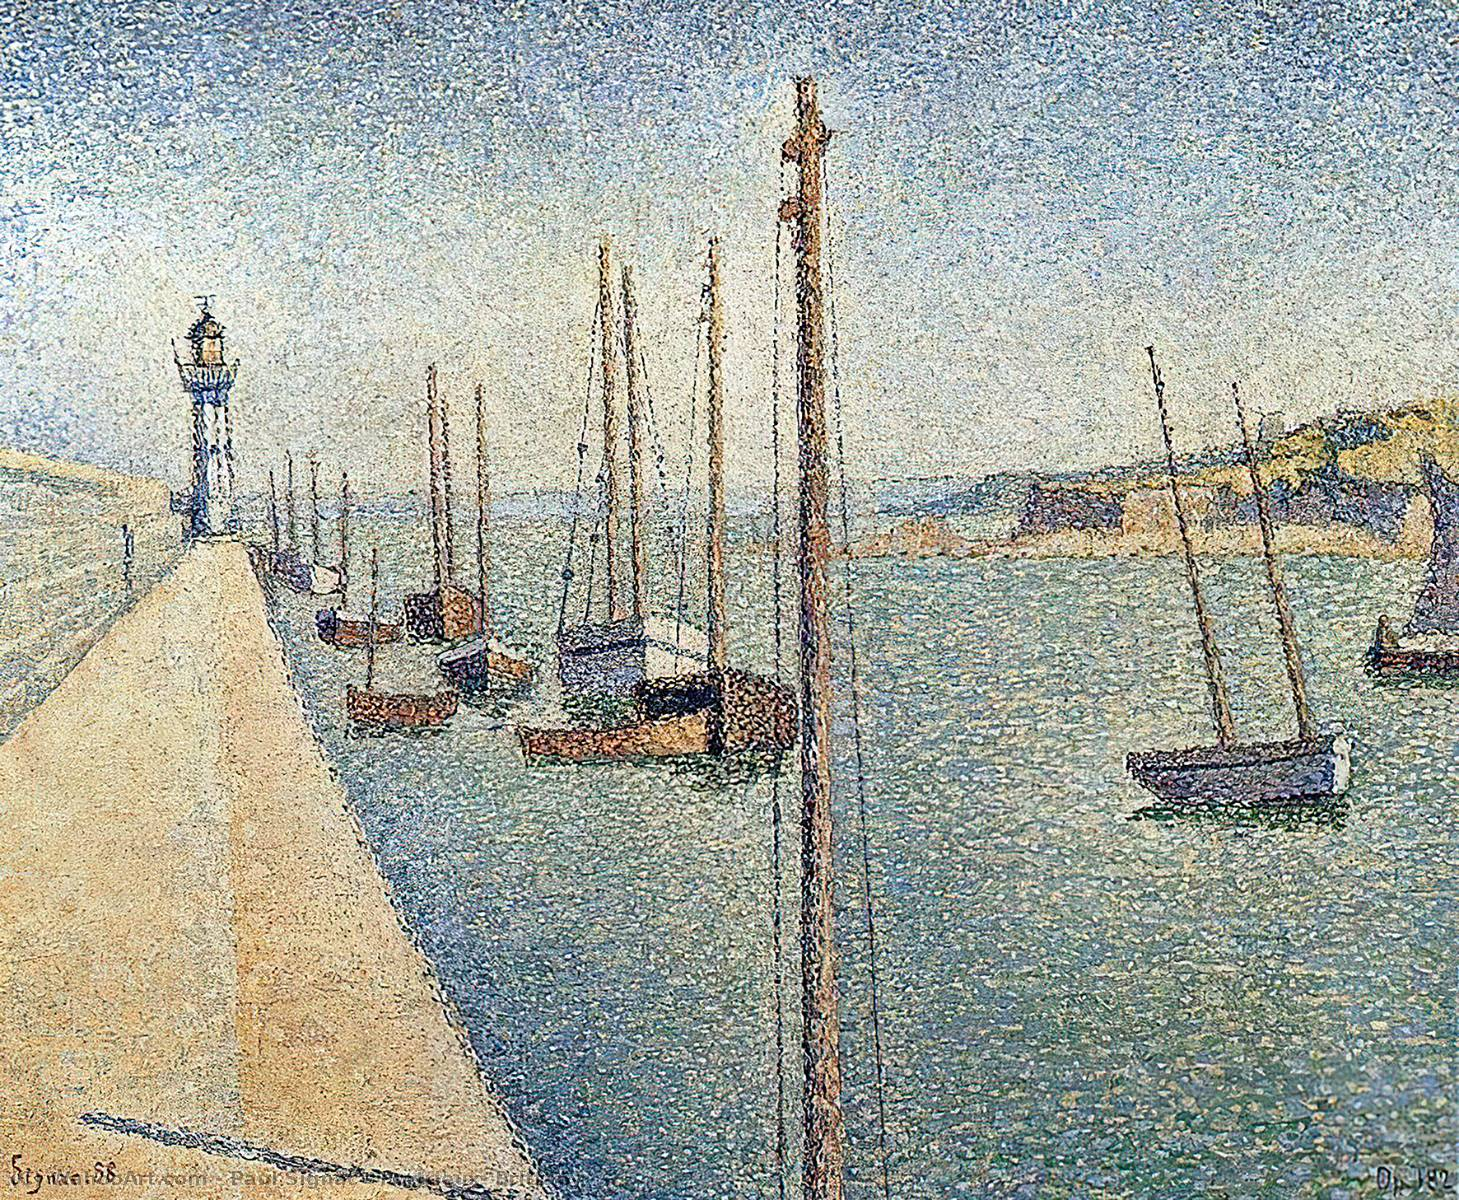 Achat Reproductions De Peintures | Portrieux , Bretagne de Paul Signac | Most-Famous-Paintings.com